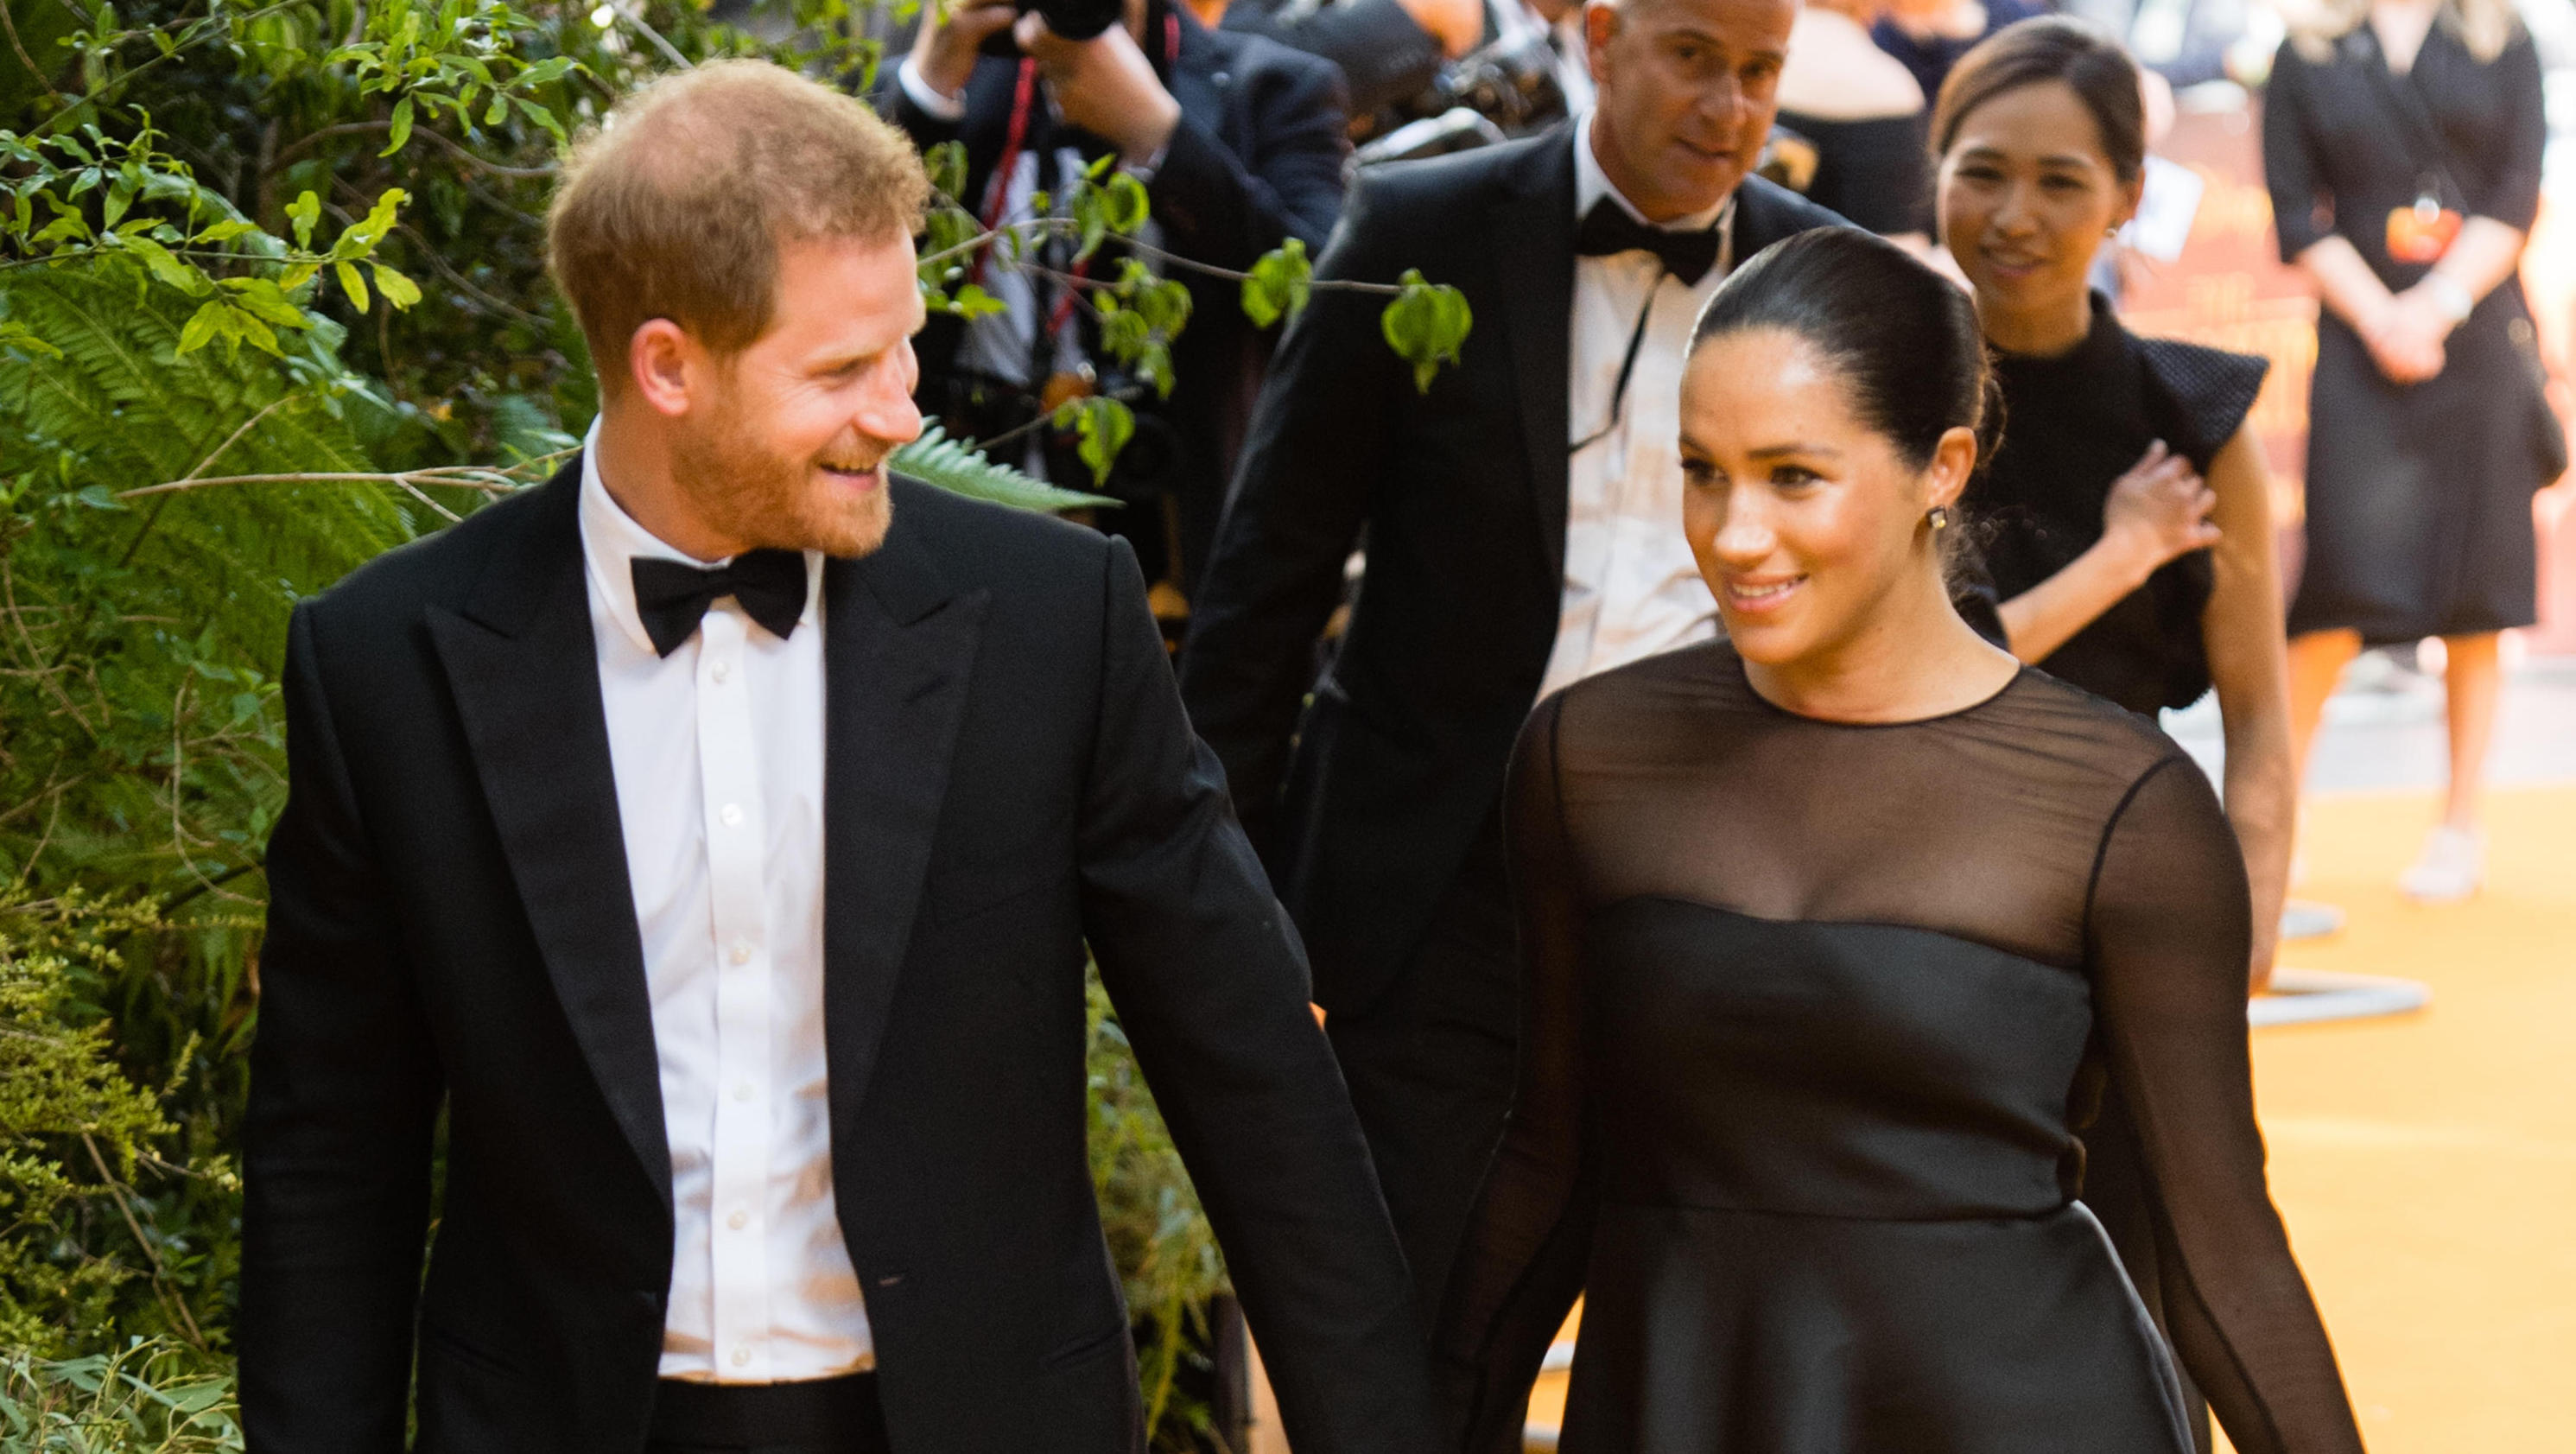 meghan markle s style from suits to the royal family cbs news https www cbsnews com pictures meghan markle royal style suits family duchess of sussex